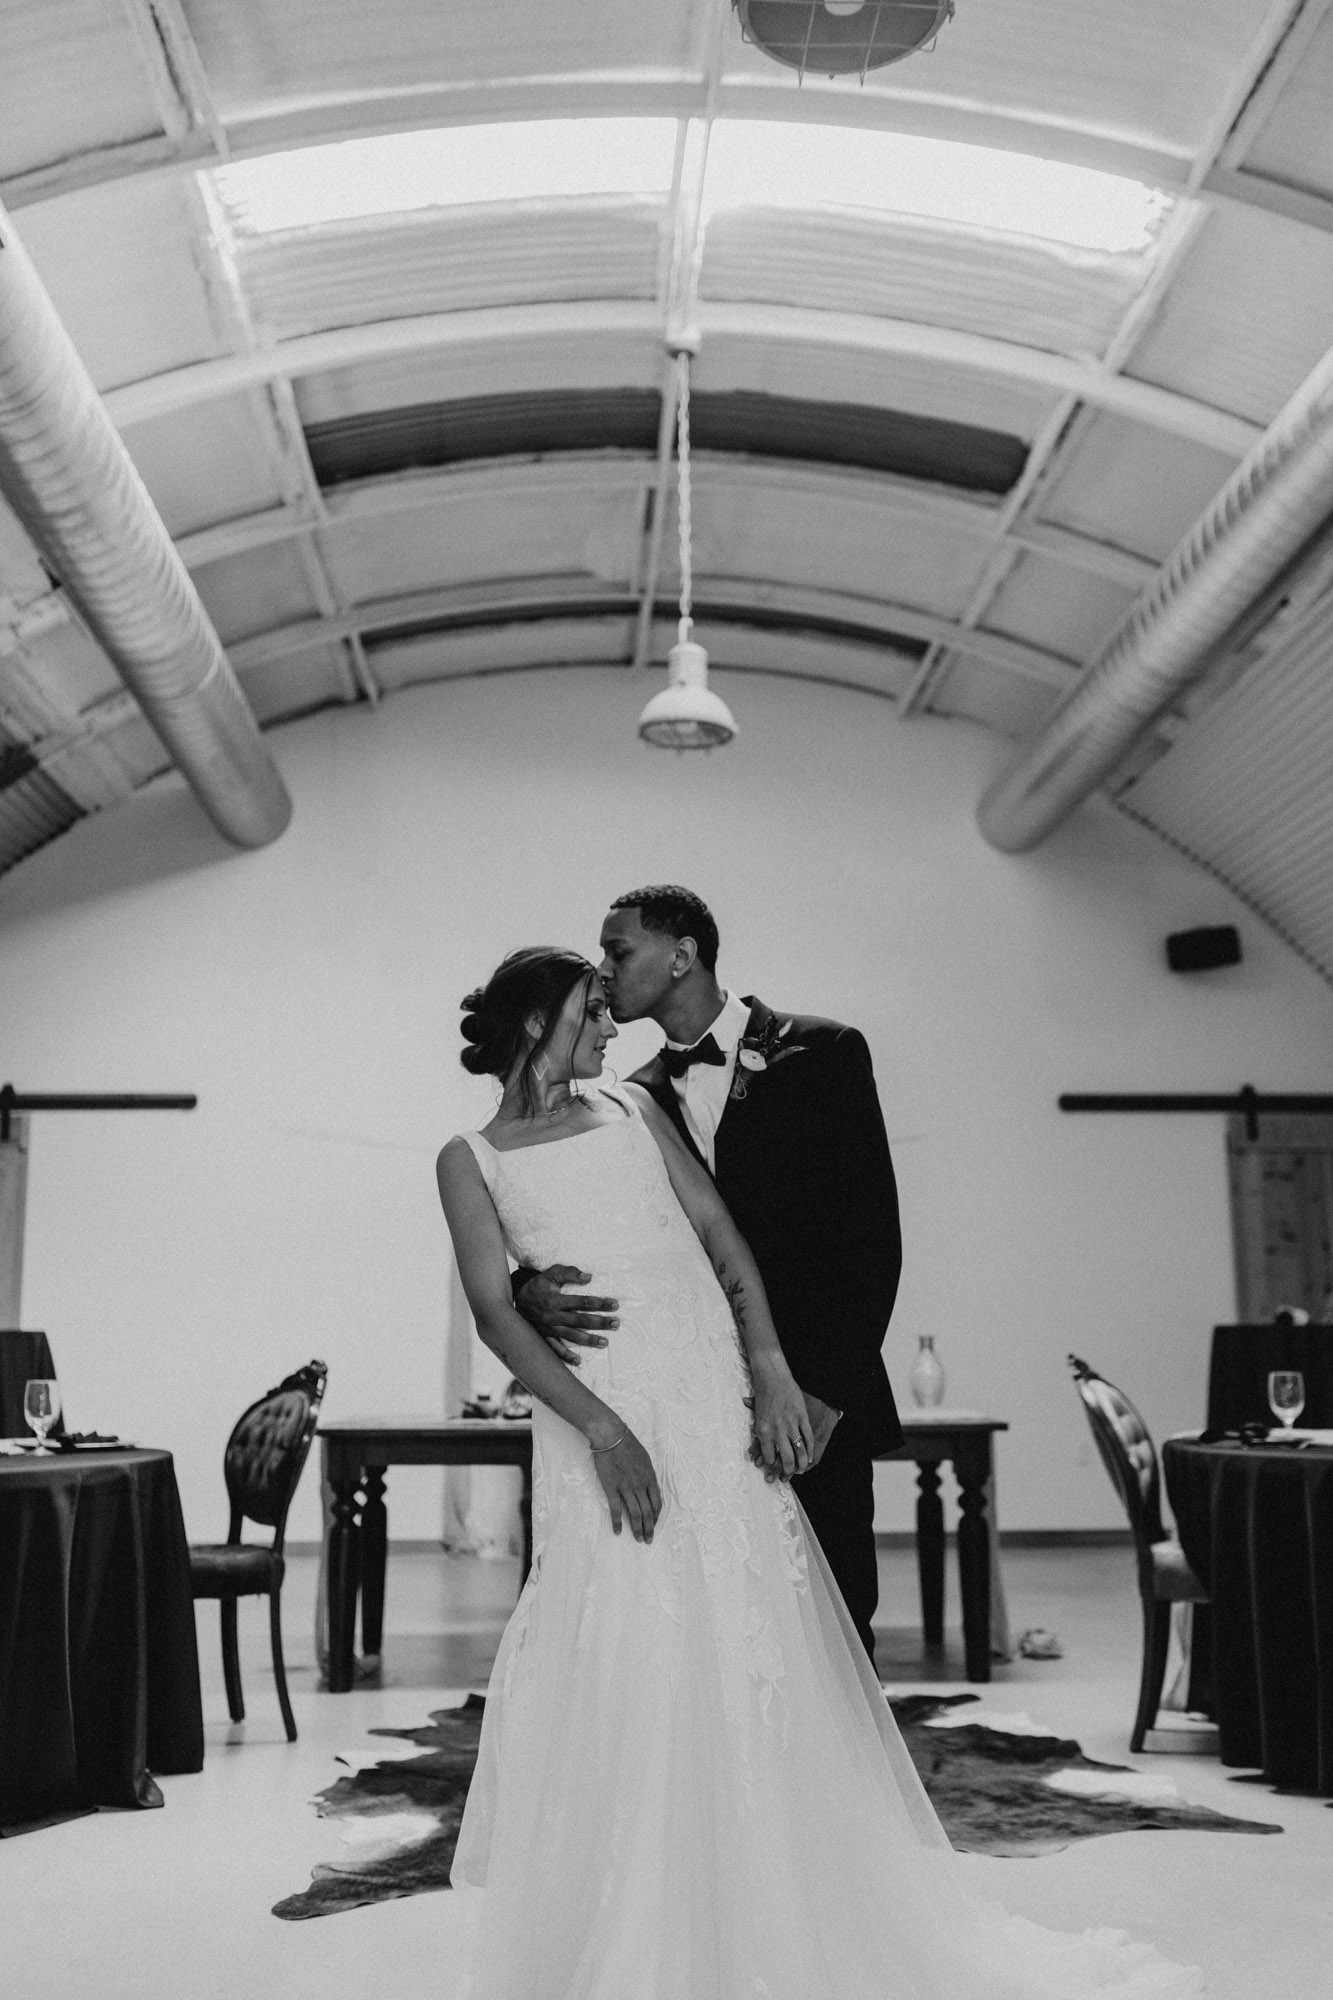 moody black and white traditional wedding photo